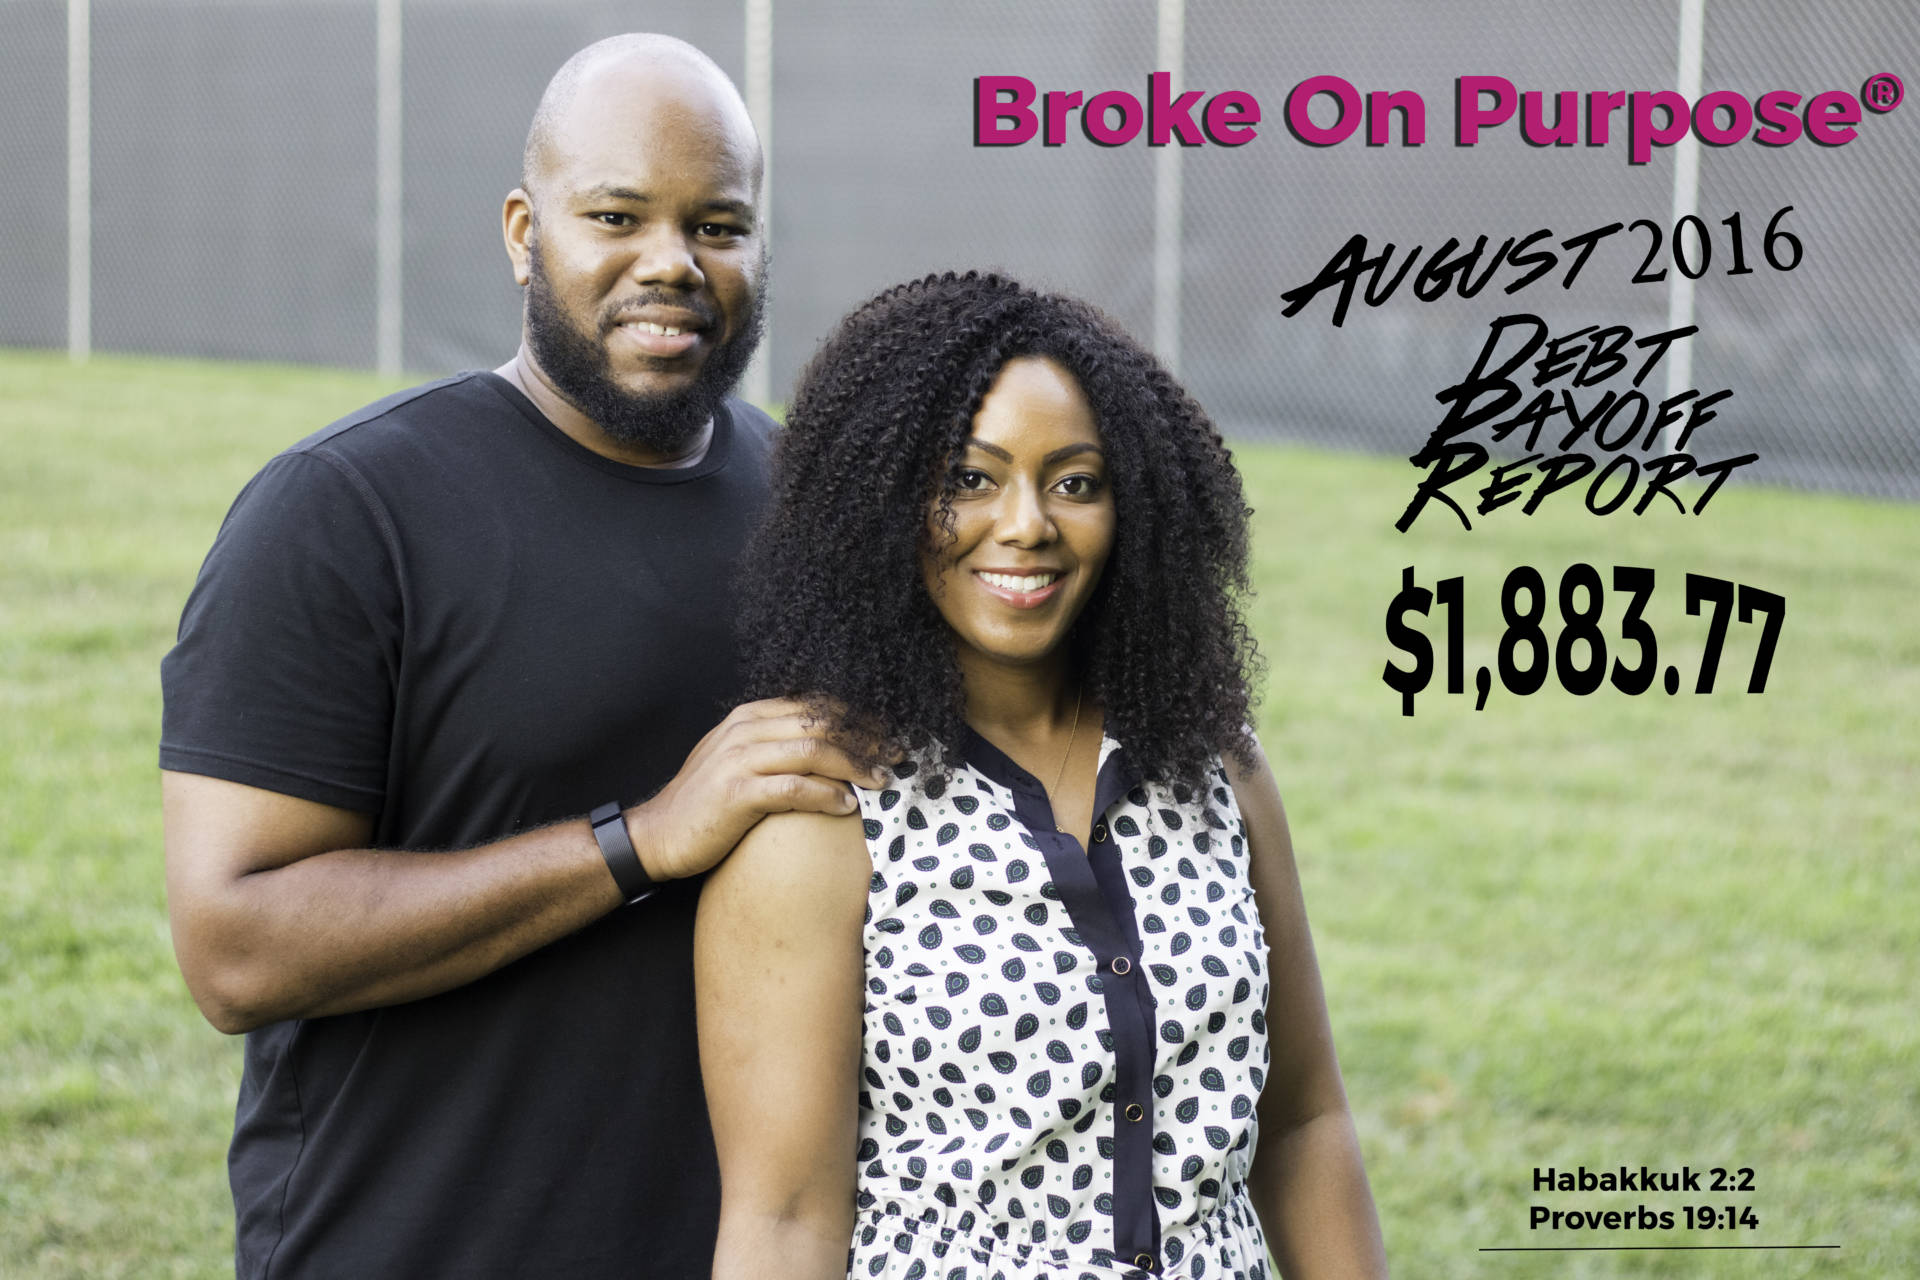 Broke On Purpose August Debt Payoff Report